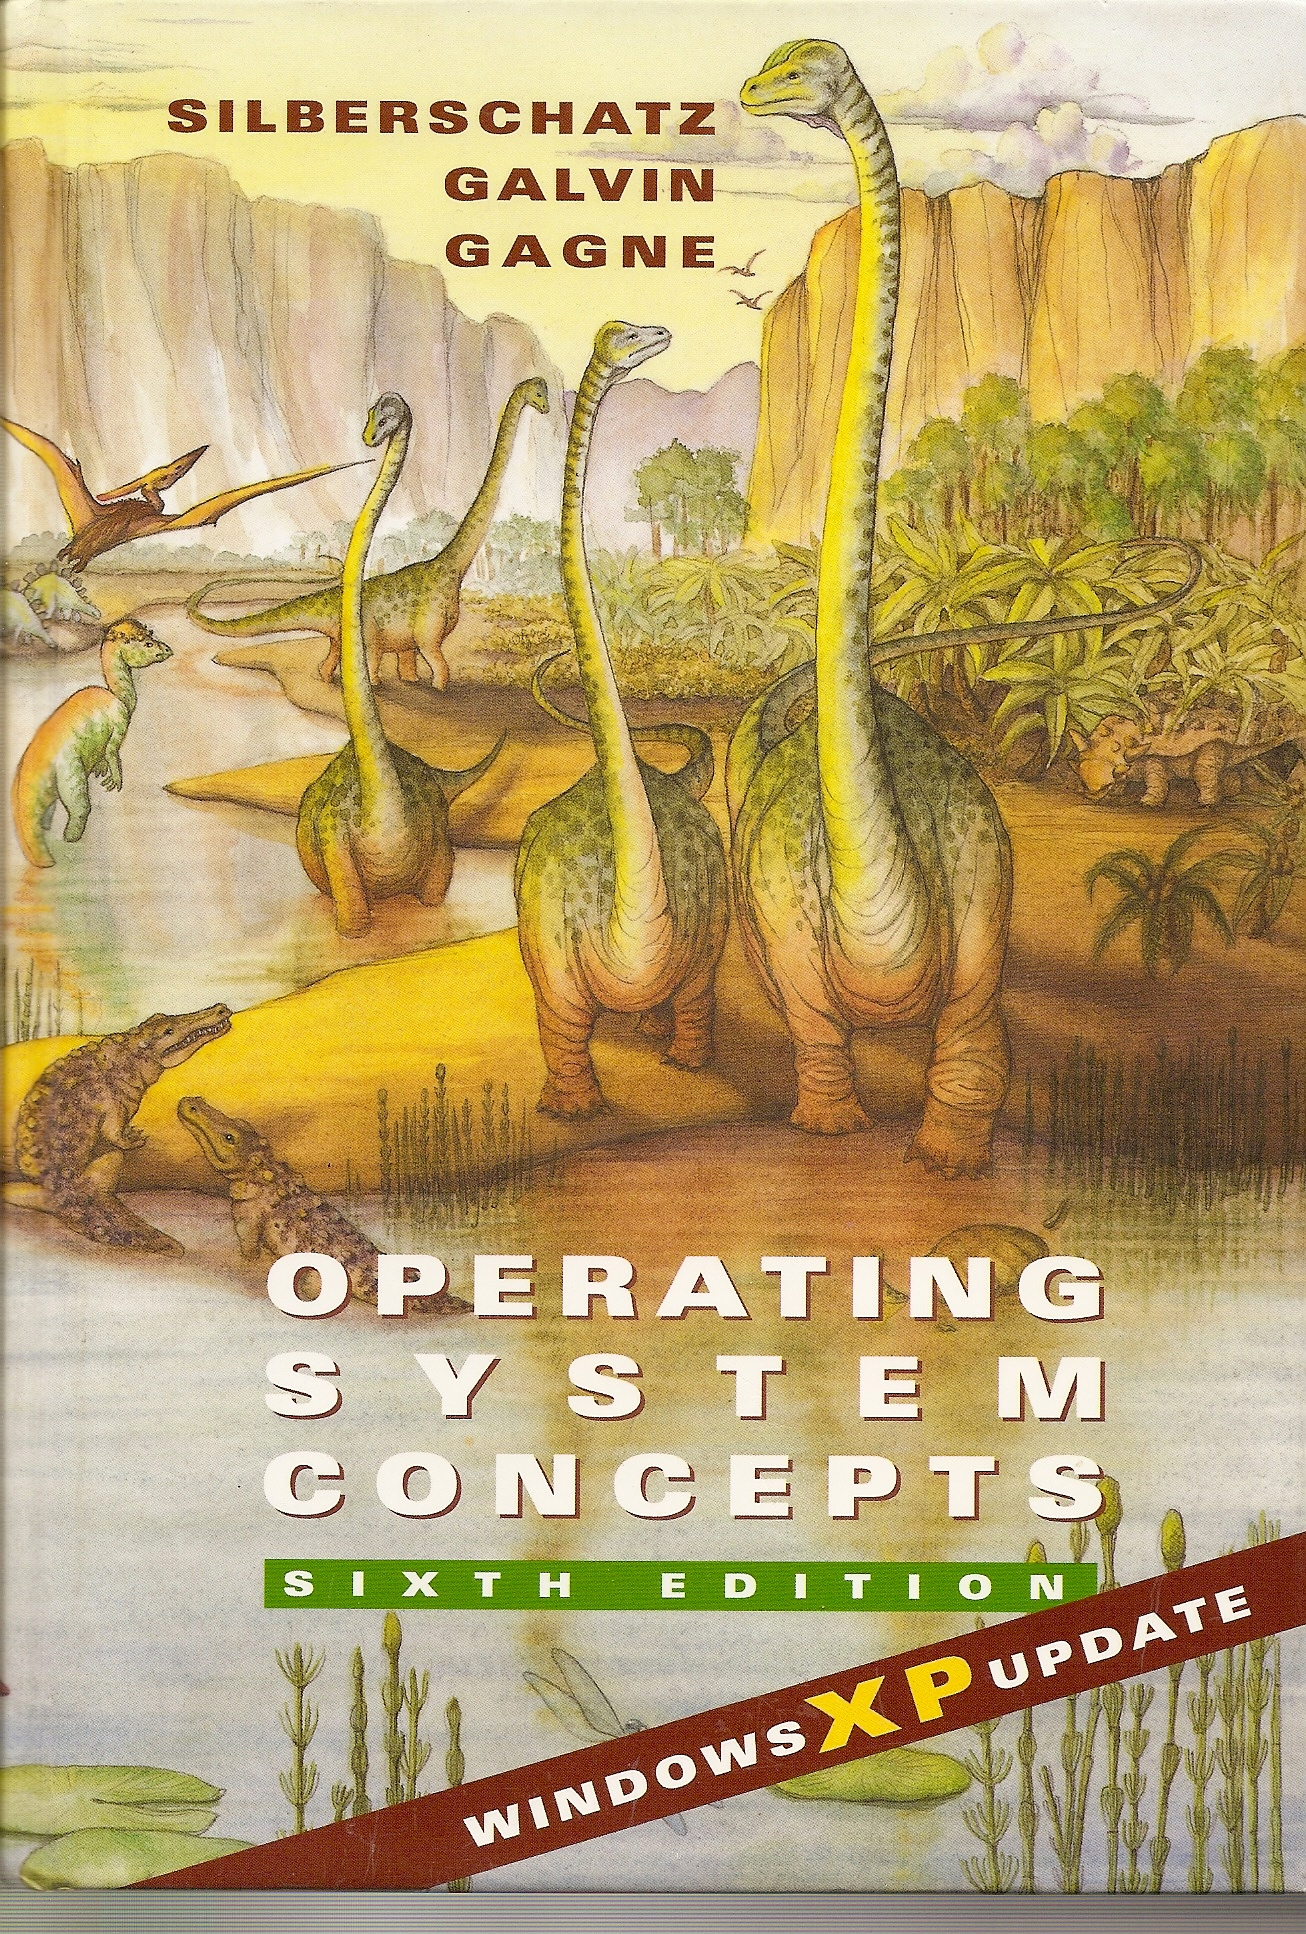 History of operating system concepts textbook peter baer galvins blog osc 1st edition osc 2nd edition osc 6th xp update fandeluxe